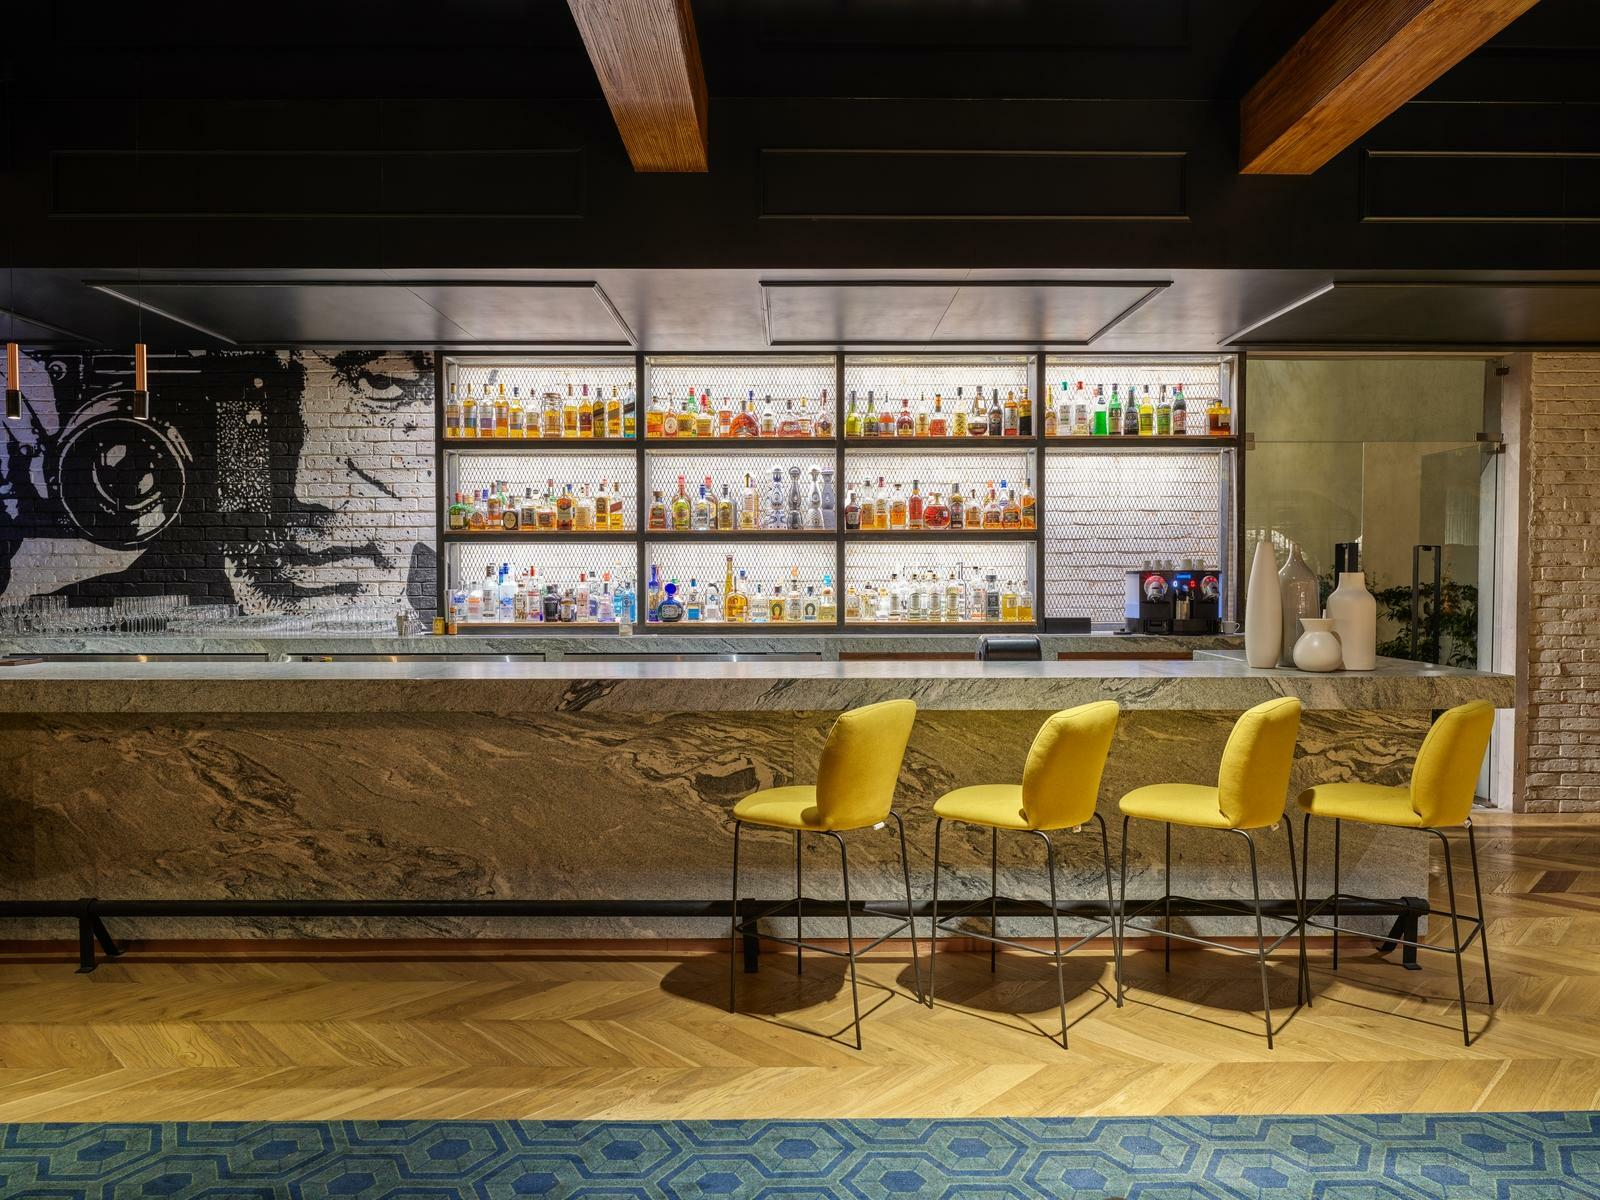 bar with yellow bar stools and liquor bottles on shelves